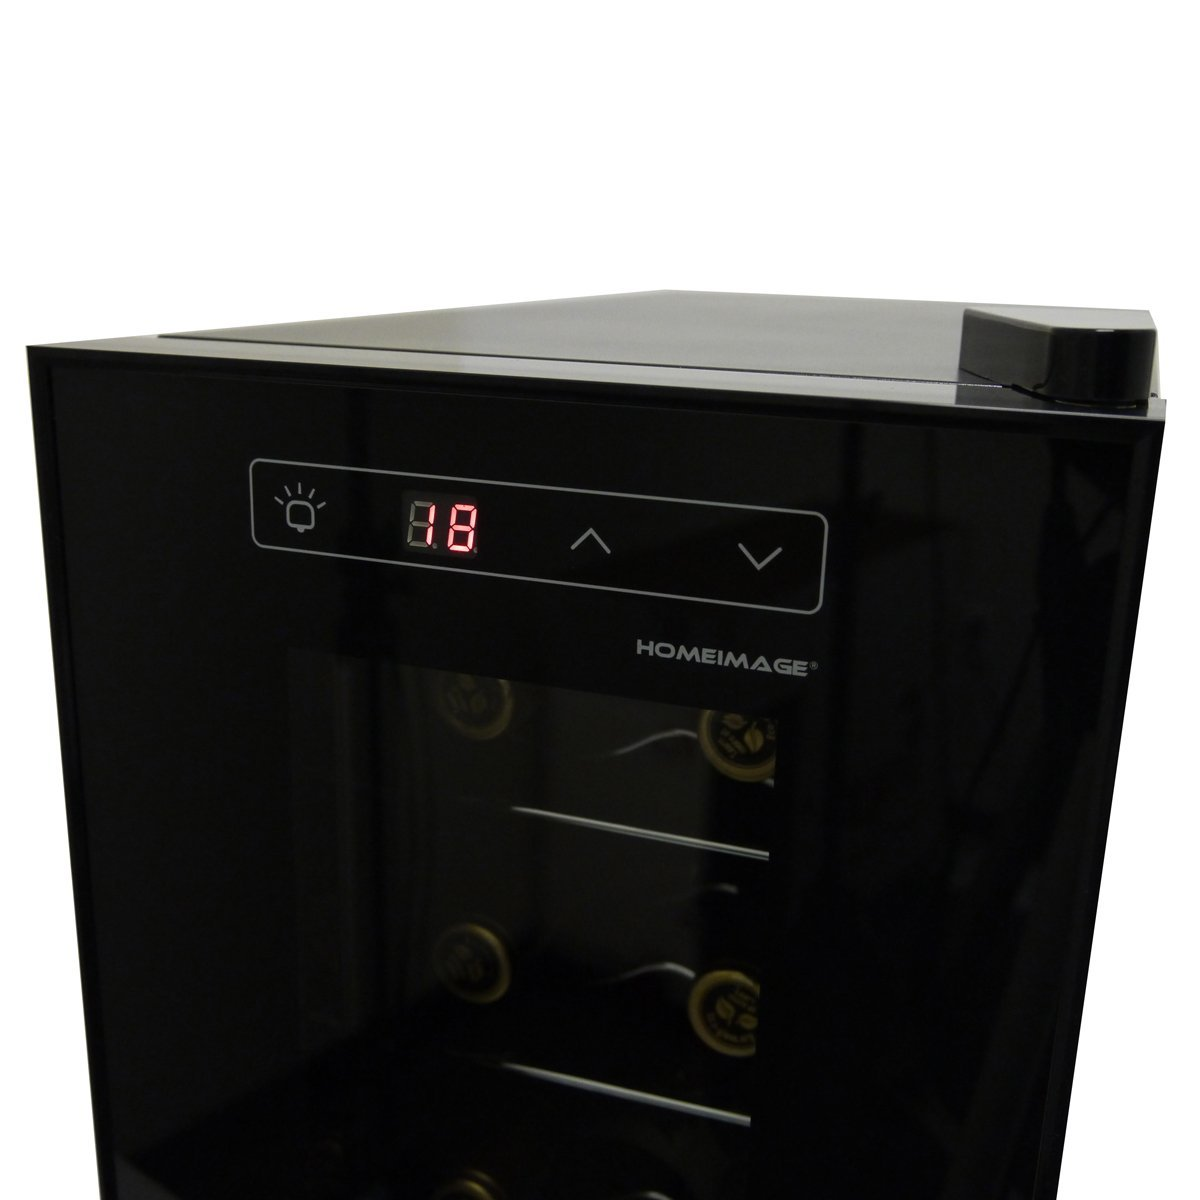 HOMEIMAGE HI-8C  Thermal Electric Wine Cooler-8 Bottle